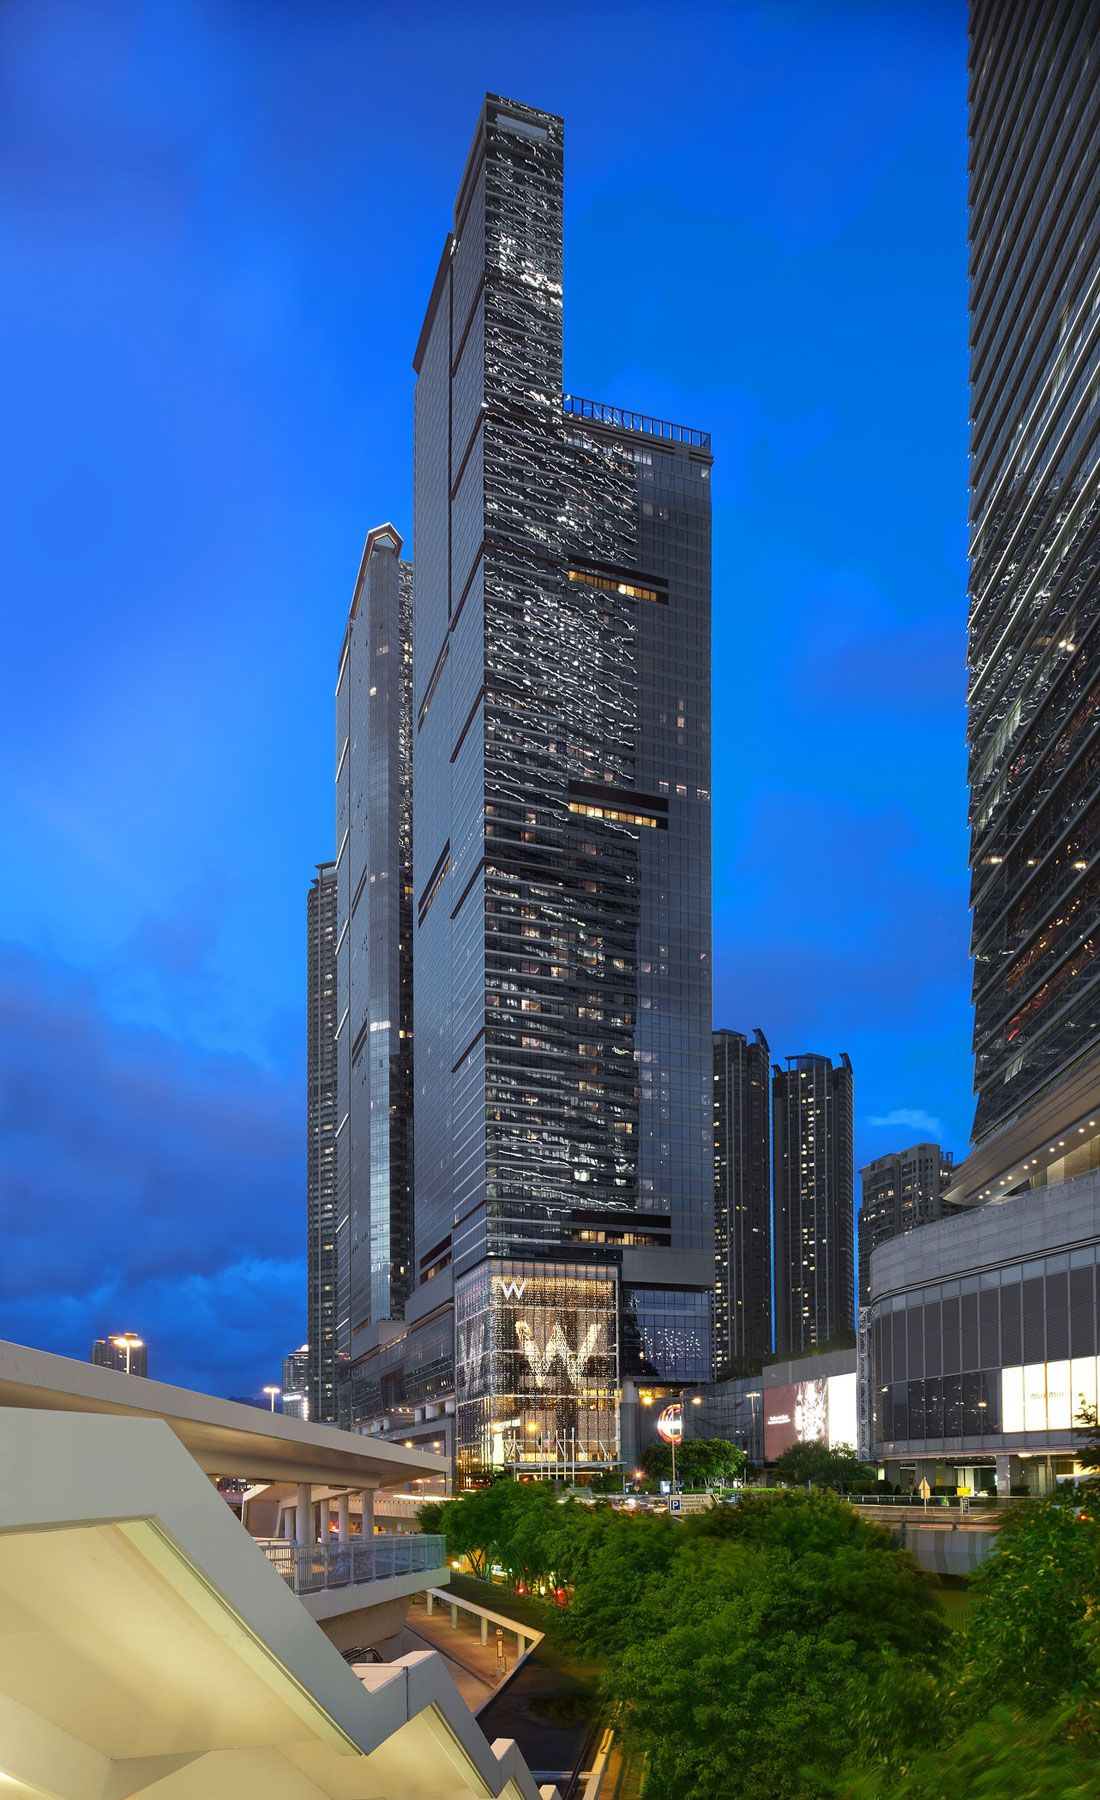 Luxurious W Hong Kong Hotel Caandesign Architecture